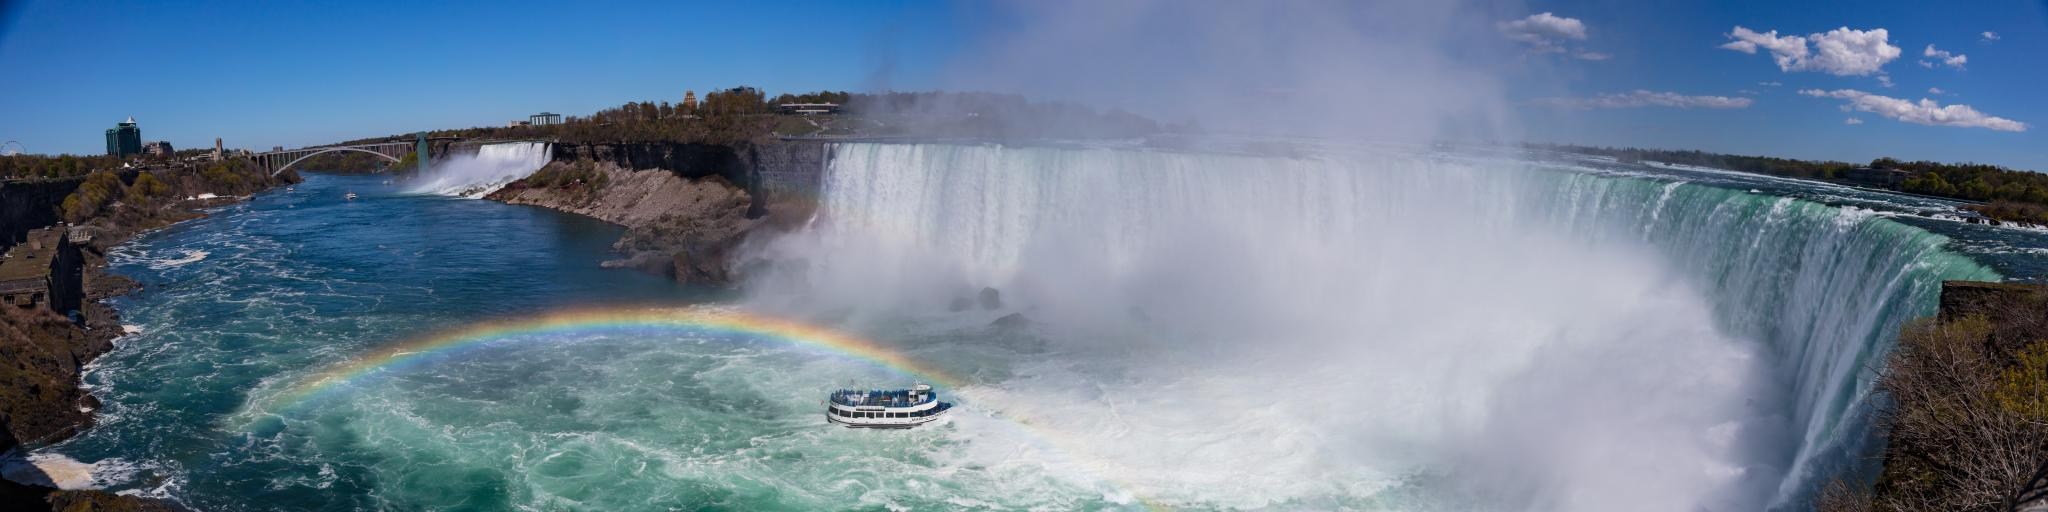 A panoramic view of Niagara Falls with a boat near the mist from the water that creates a rainbow.